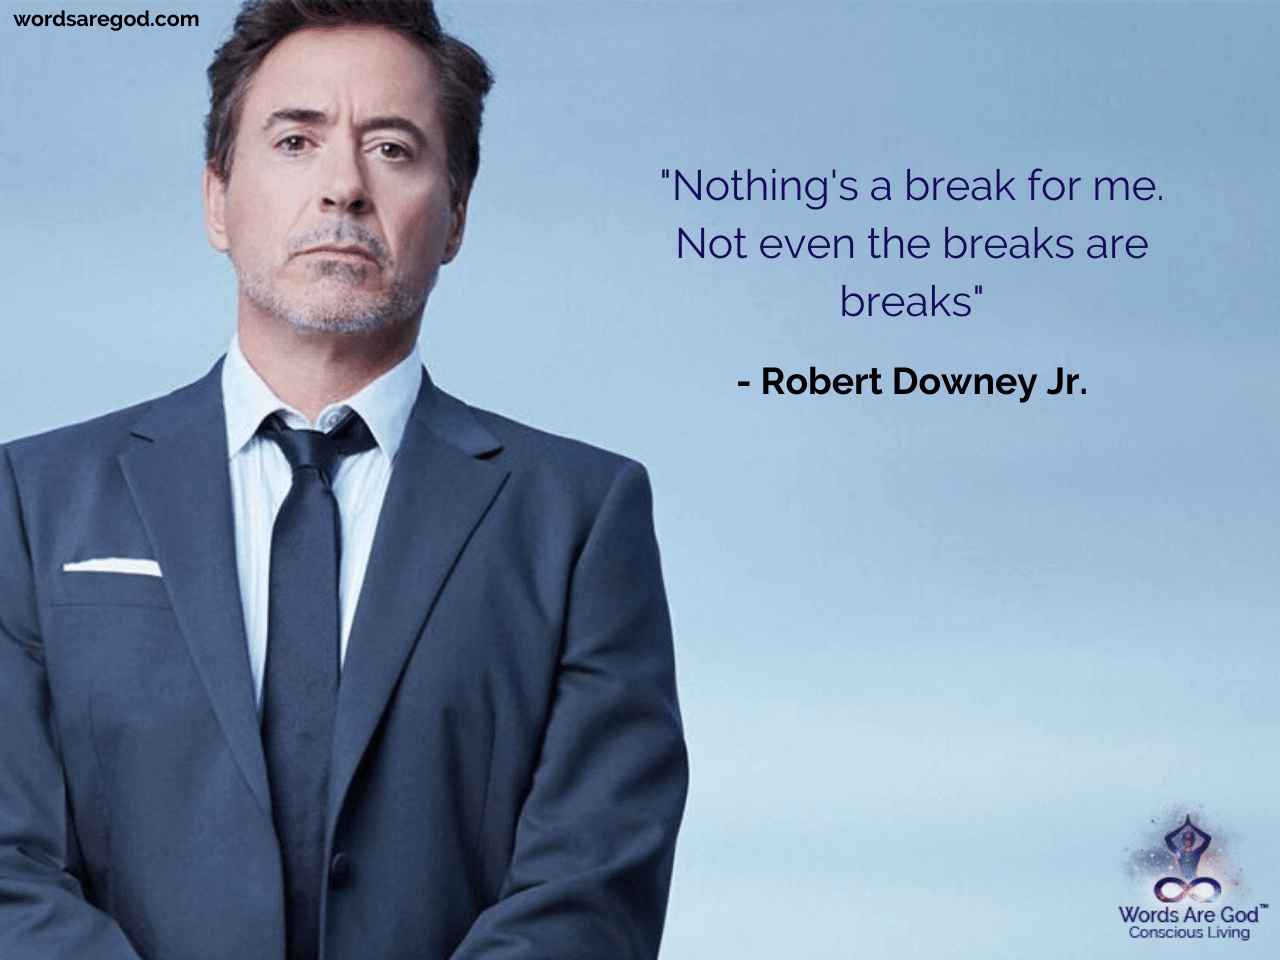 Robert Downey Jr. Best Quote by Robert Downey Jr.